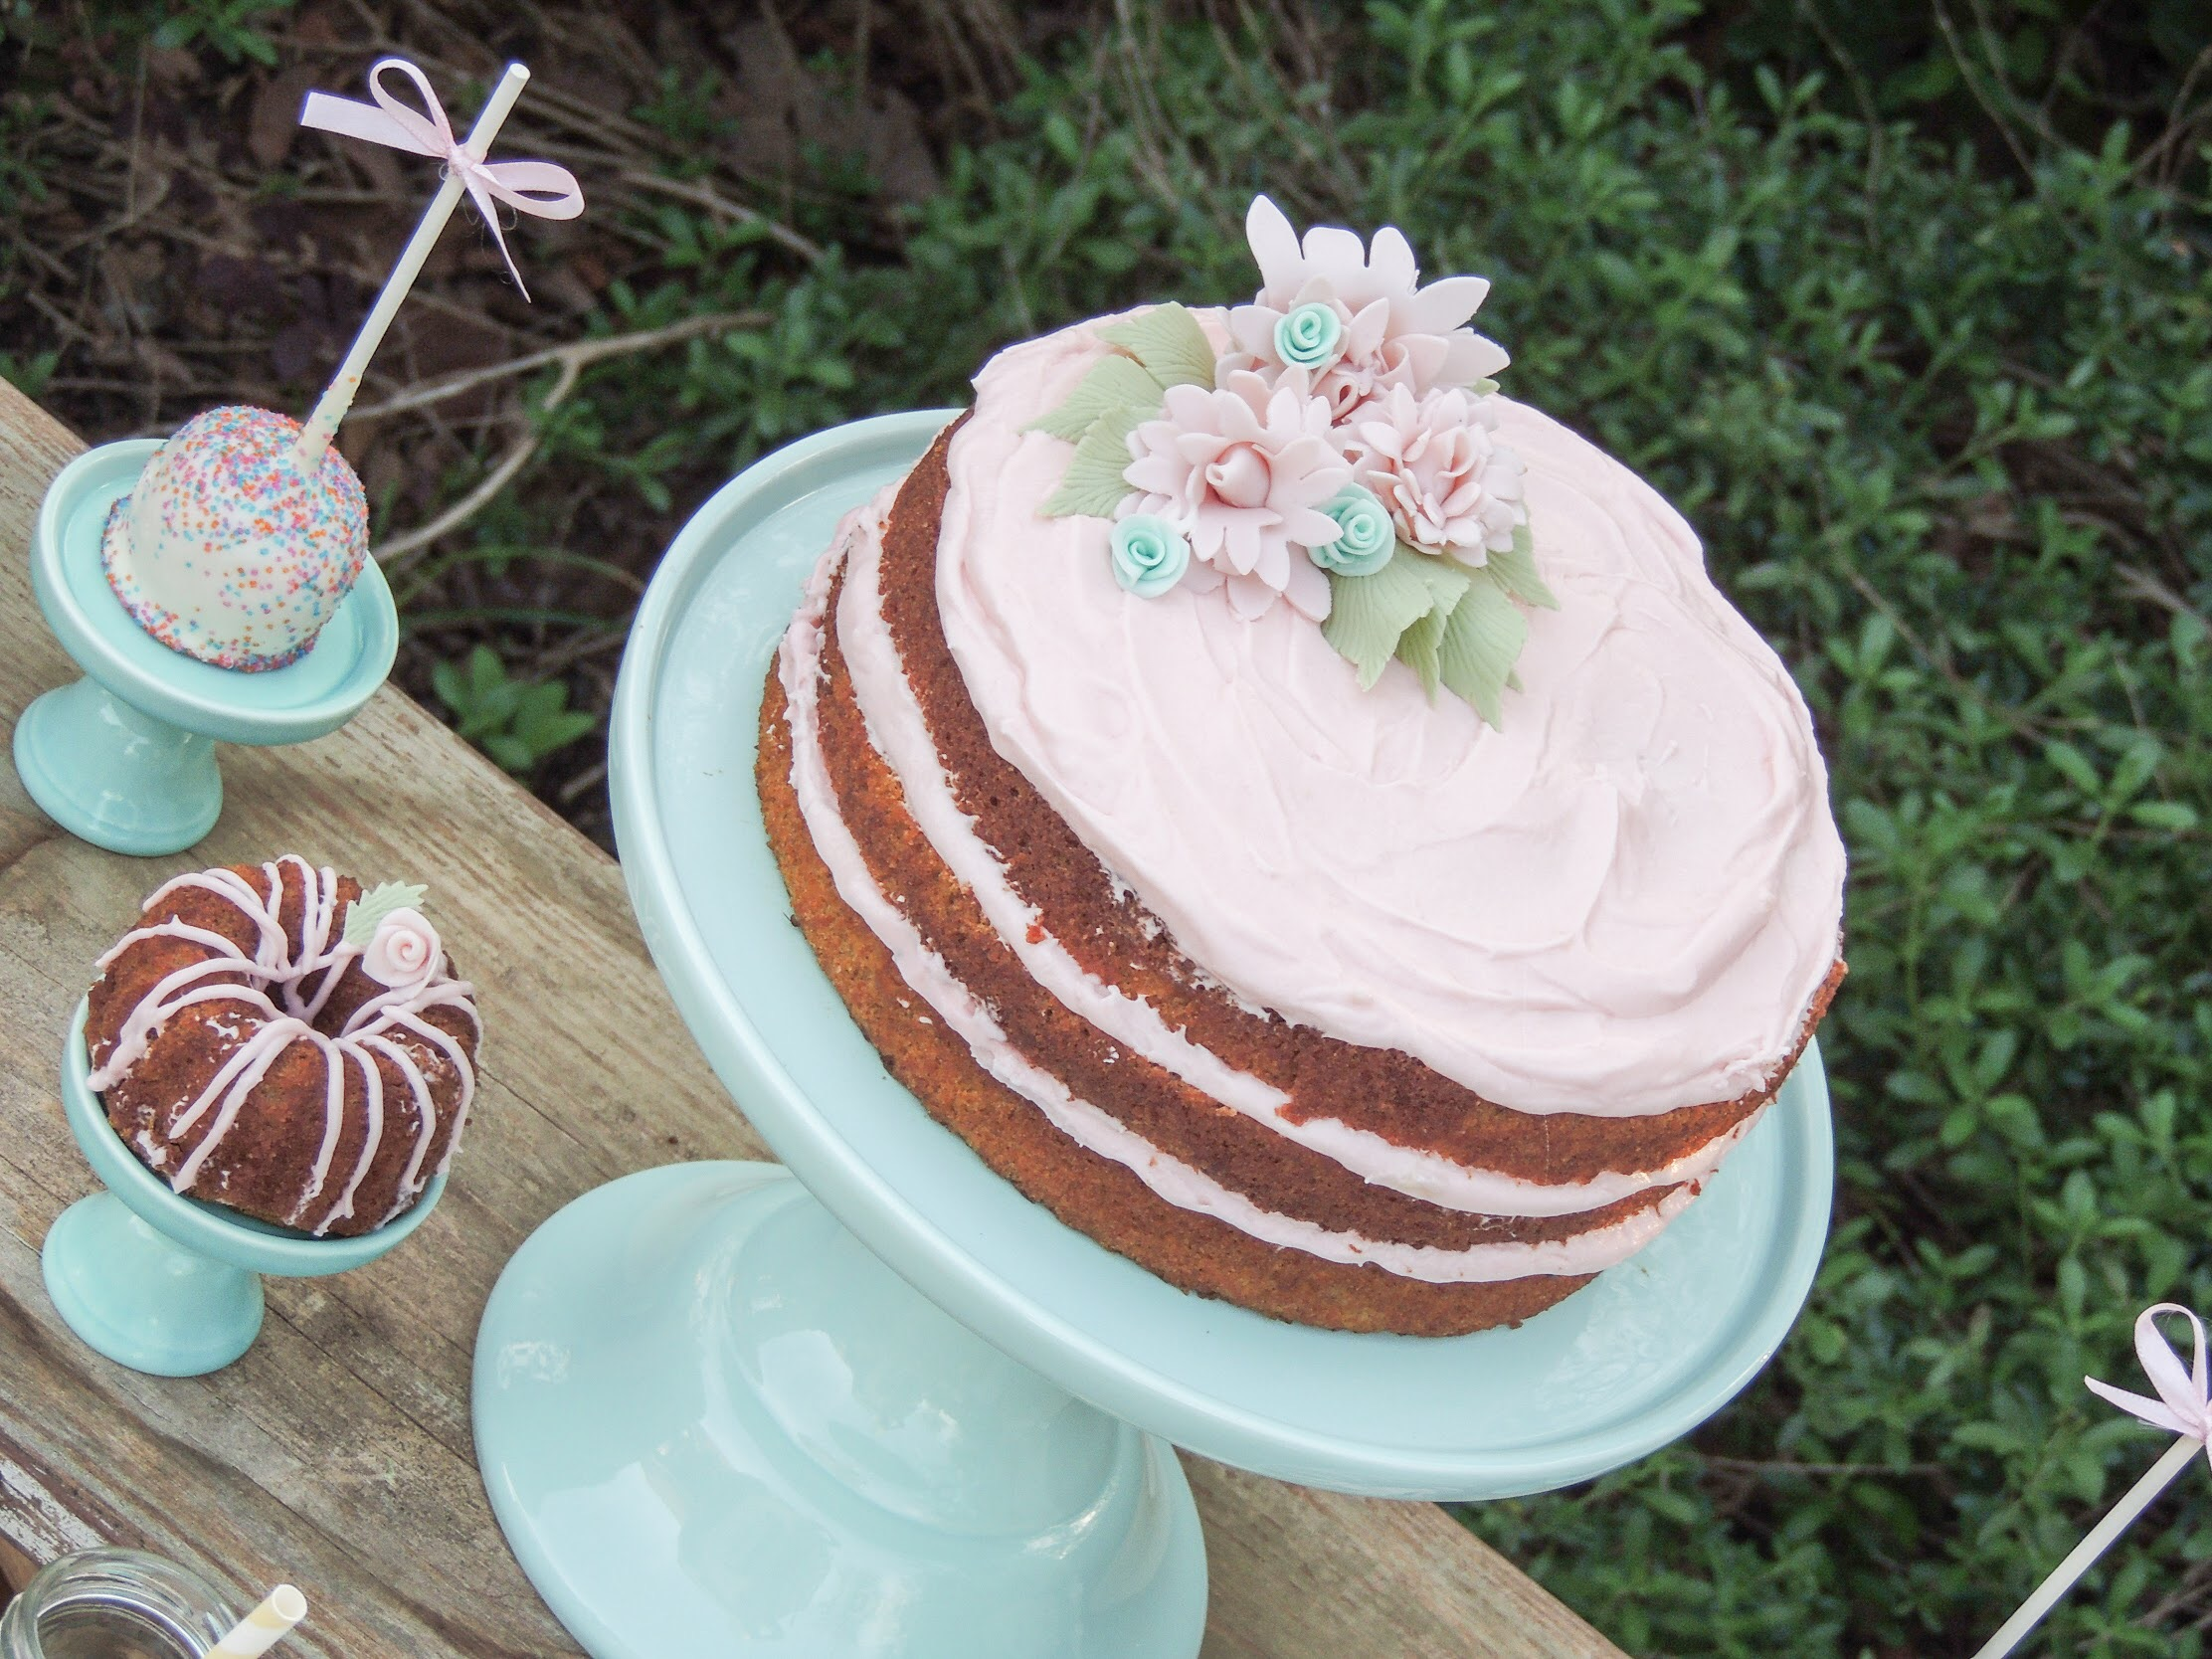 The prettiest of Spring Easter cakes - naked party cake topped with pretty sugar flowers. See more of this Easter Dessert Table on Mint Event Design www.minteventdesign.com #eastertable #easterdecor #easterparty #partyideas #easterideas #partycake